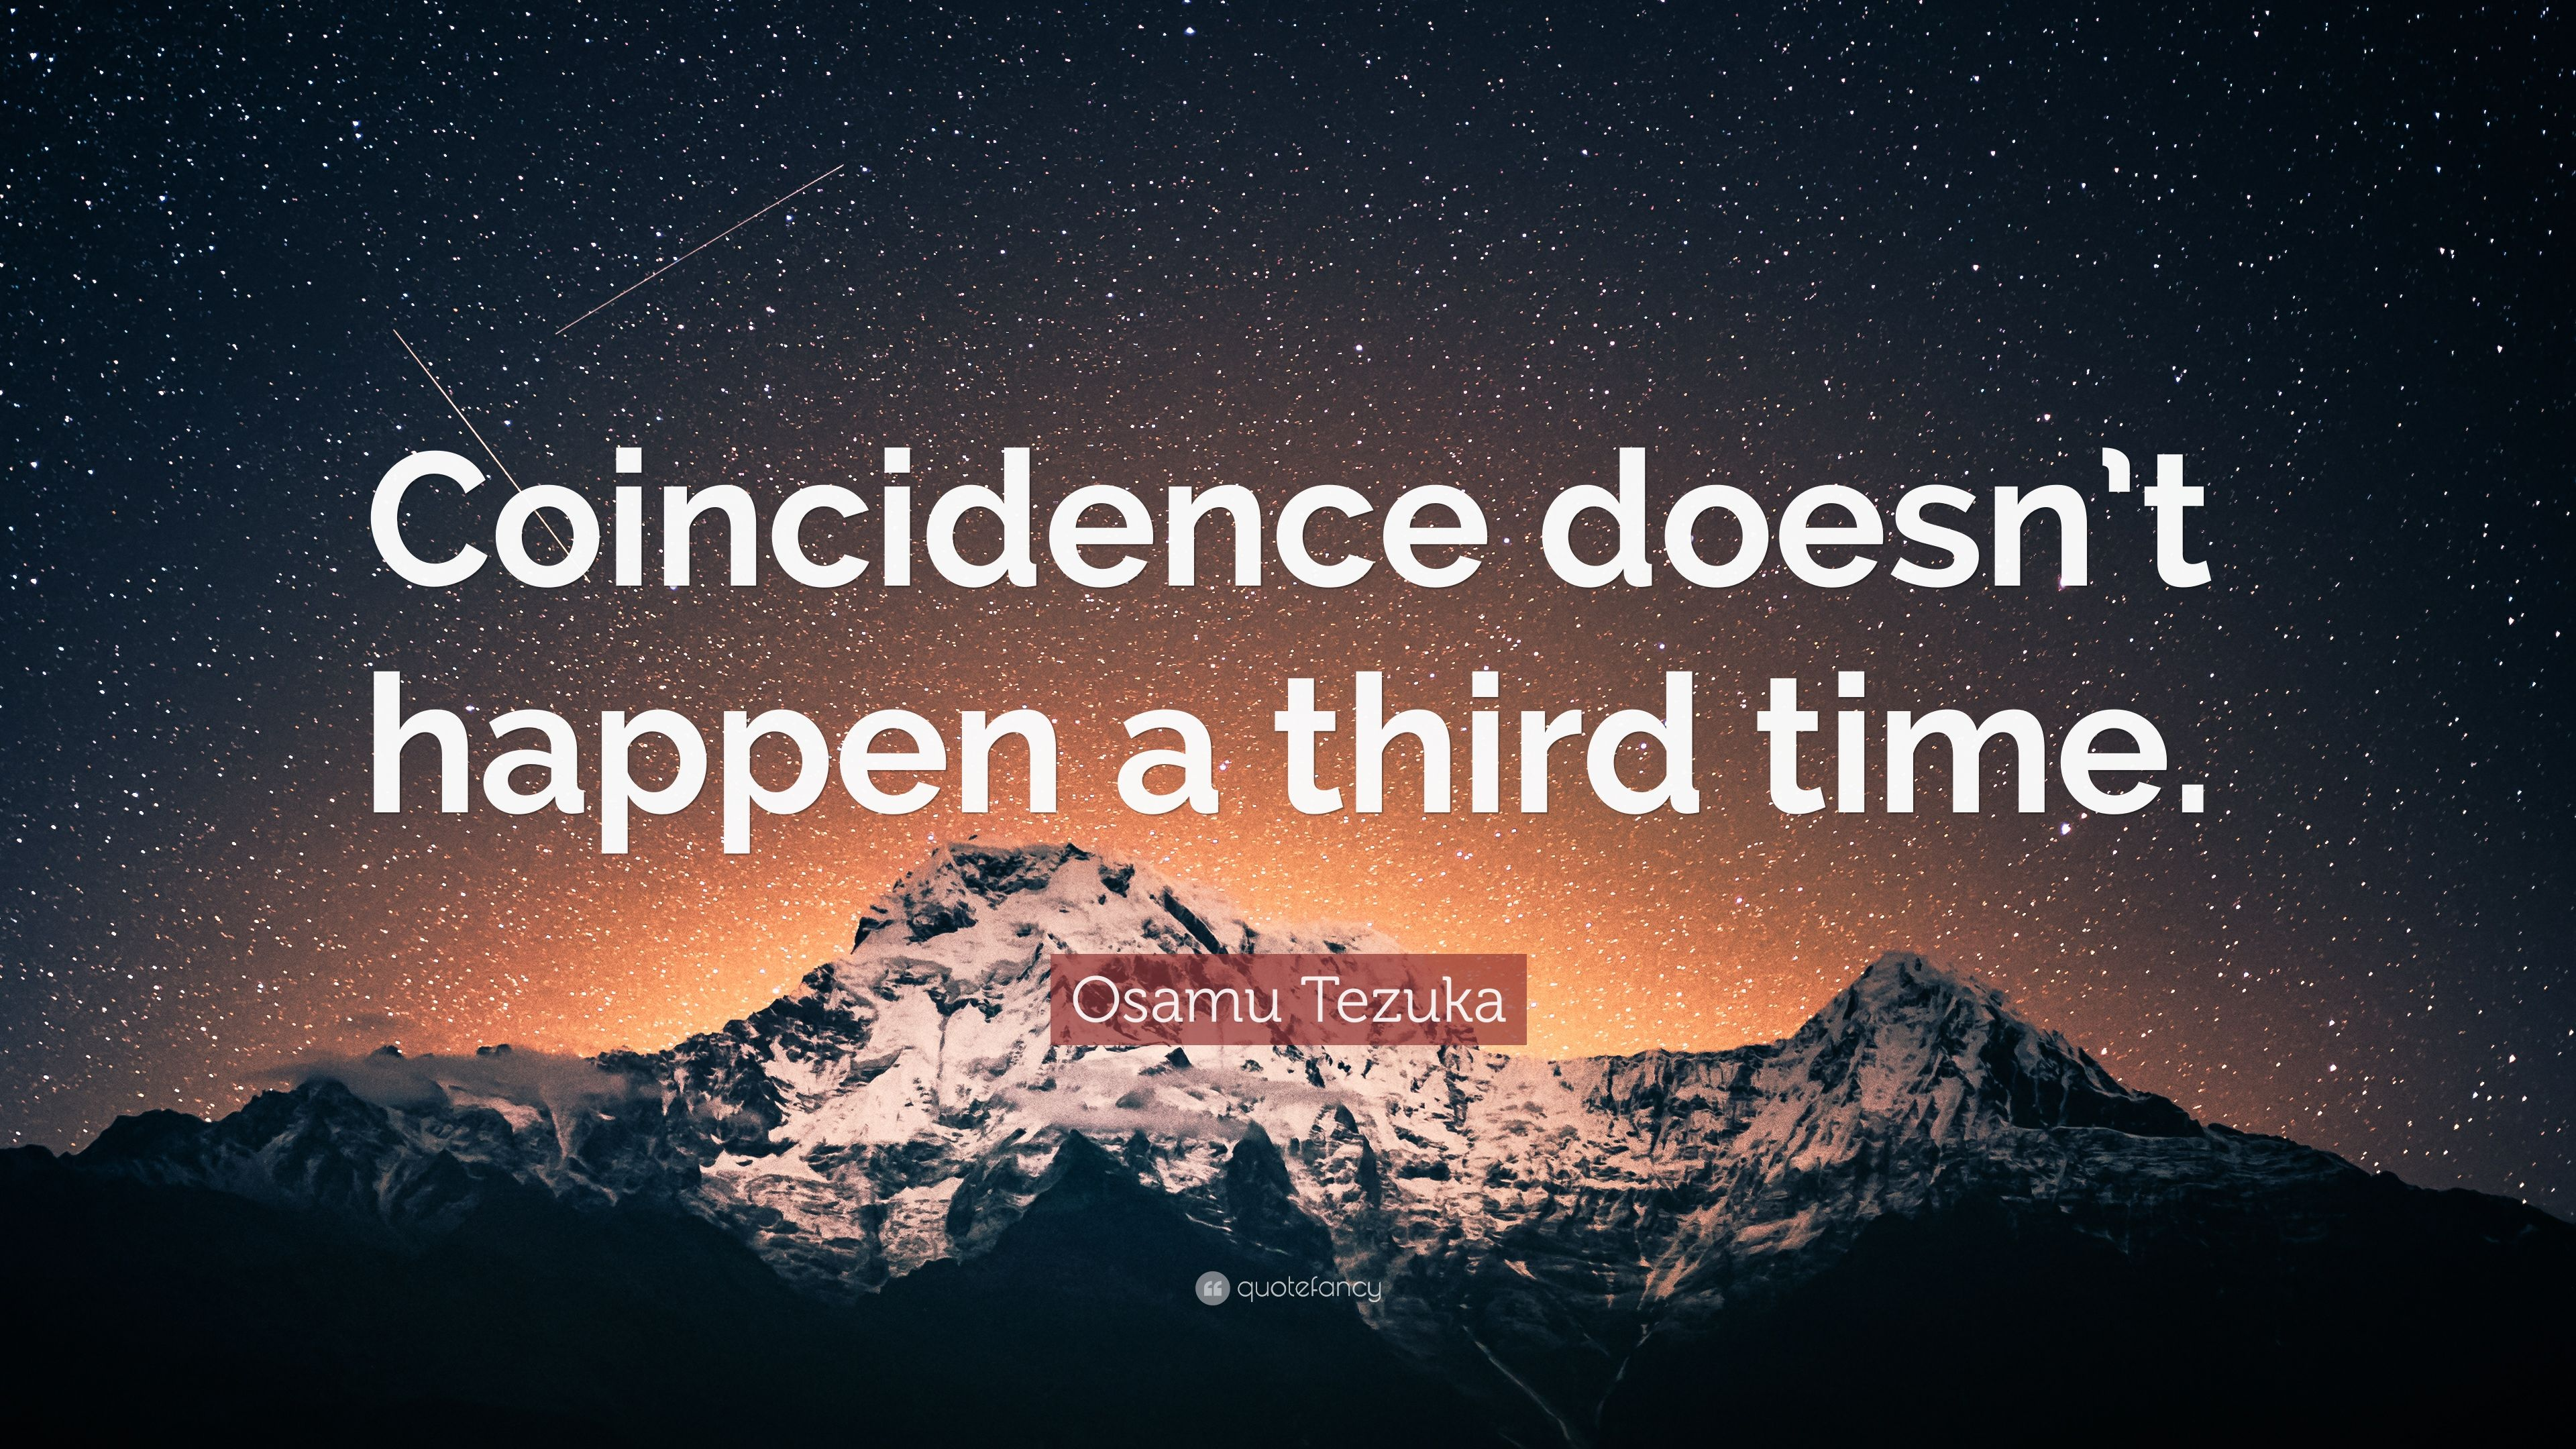 Osamu Tezuka Quote: Coincidence doesnt happen a third time.